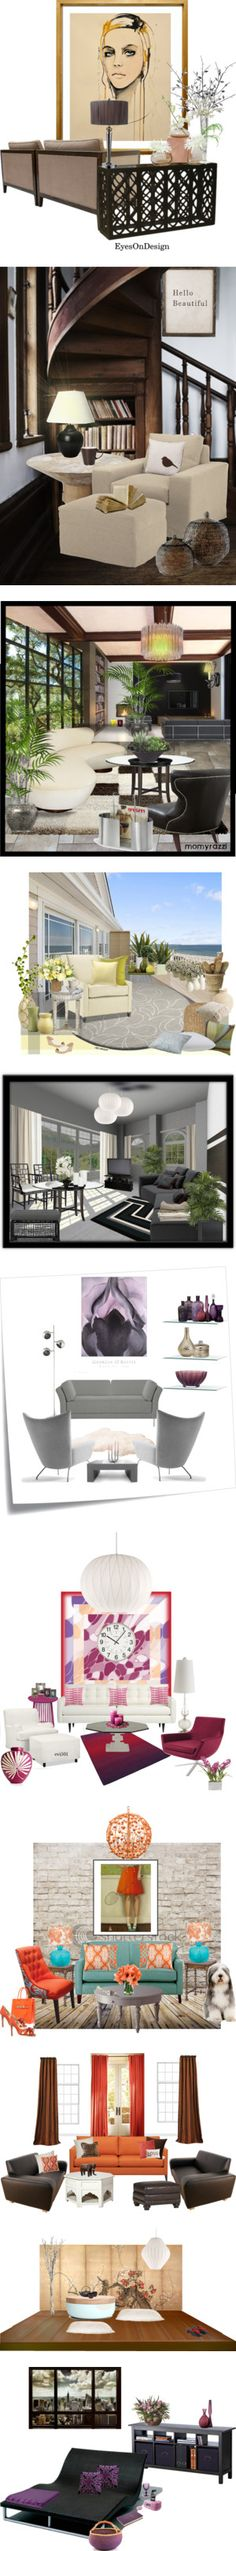 """Top Interior Design Sets for Jul 16th, 2012"" by polyvore ❤ liked on Polyvore"